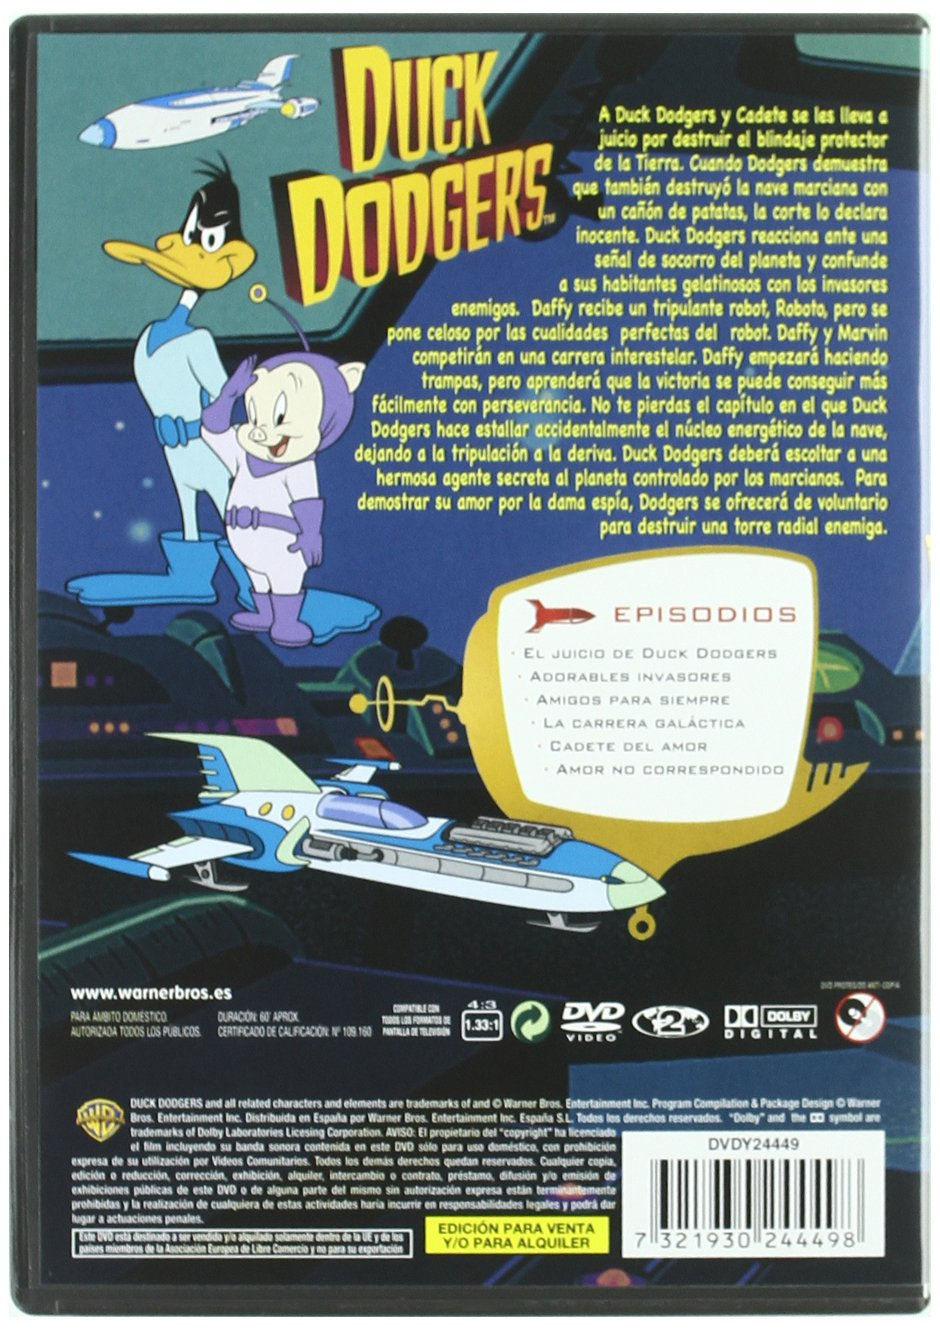 Amazon.com: Duck Dodgers: Carrera Galáctica *** Europe Zone ***: Movies & TV